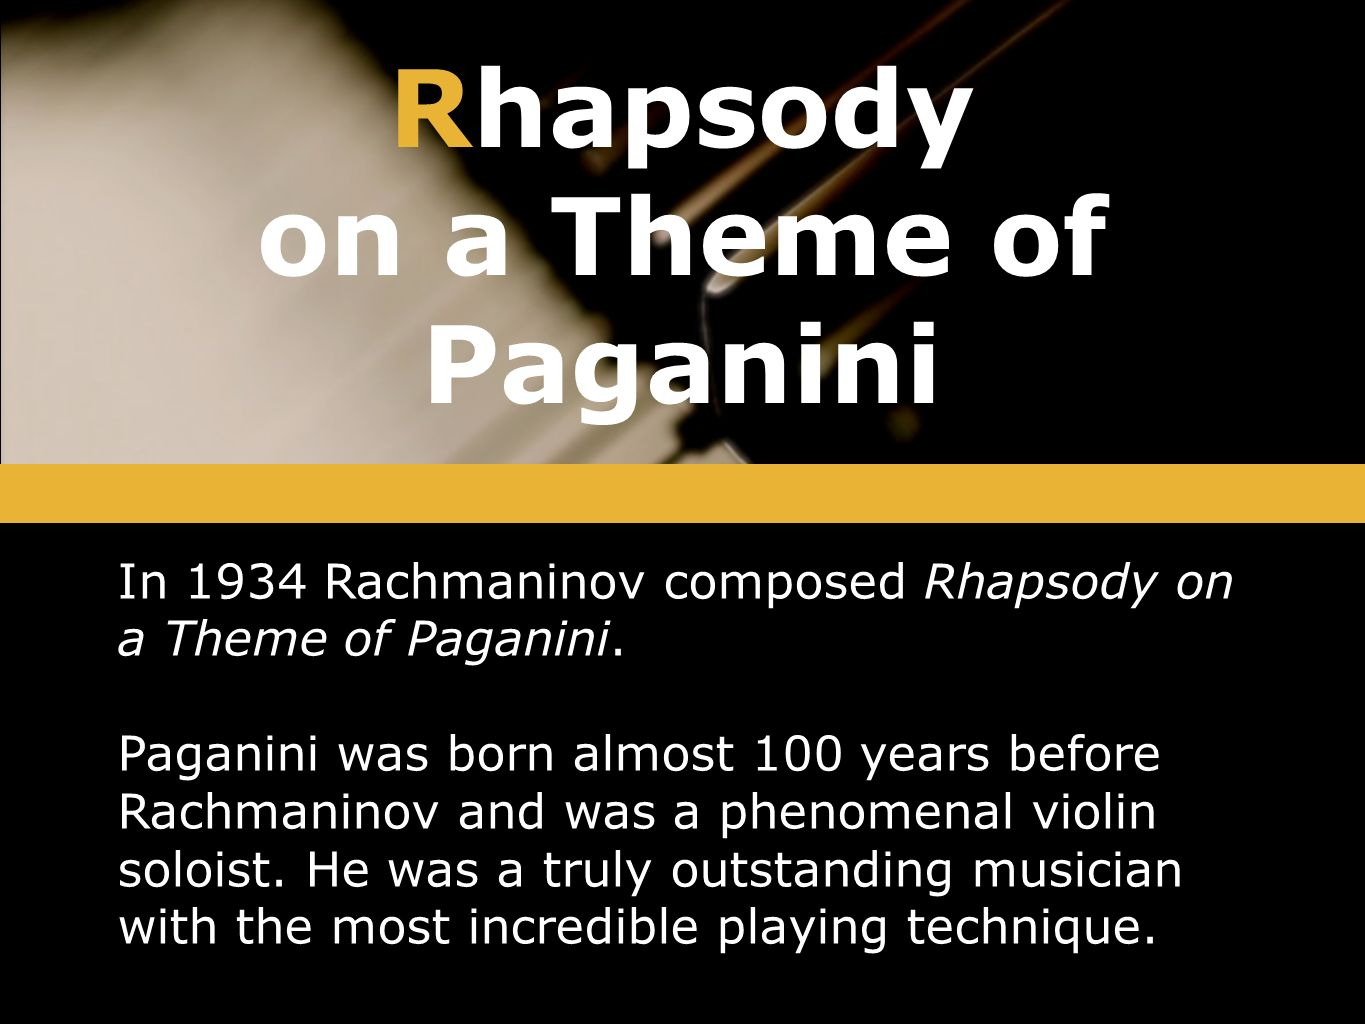 Rhapsody on a Theme of Paganini In 1934 Rachmaninov composed Rhapsody on a Theme of Paganini. Paganini was born almost 100 years before Rachmaninov an